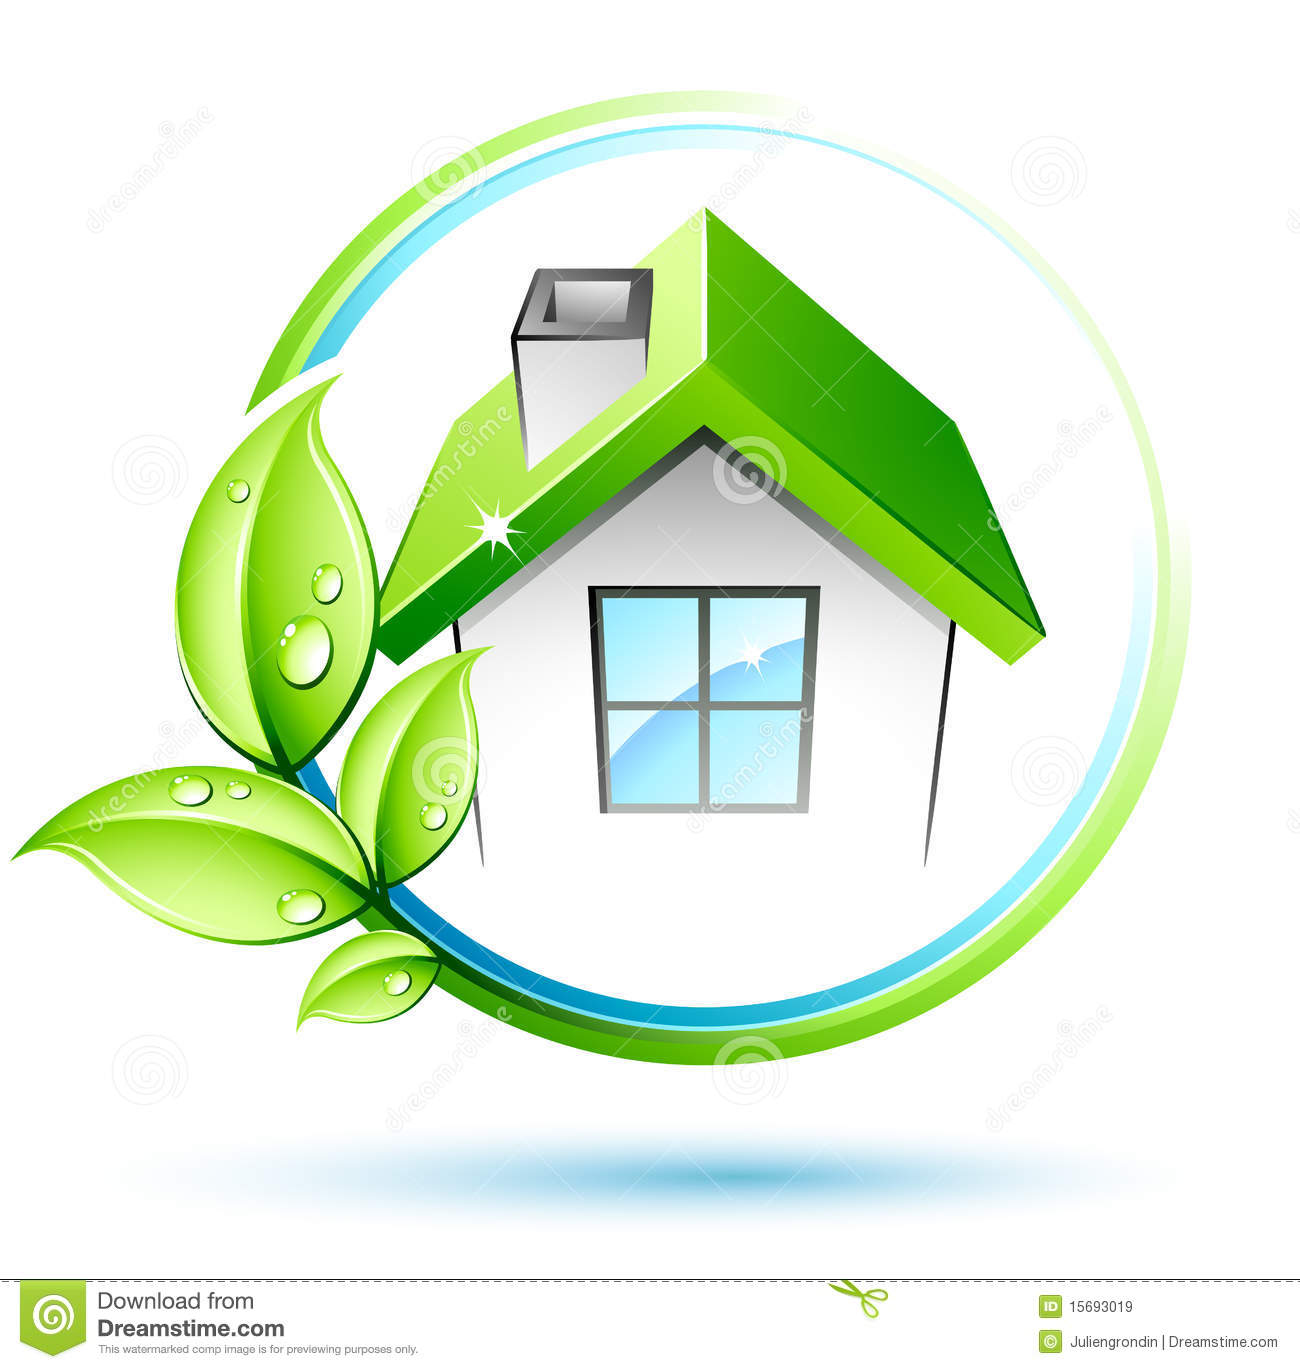 Green leaves and house